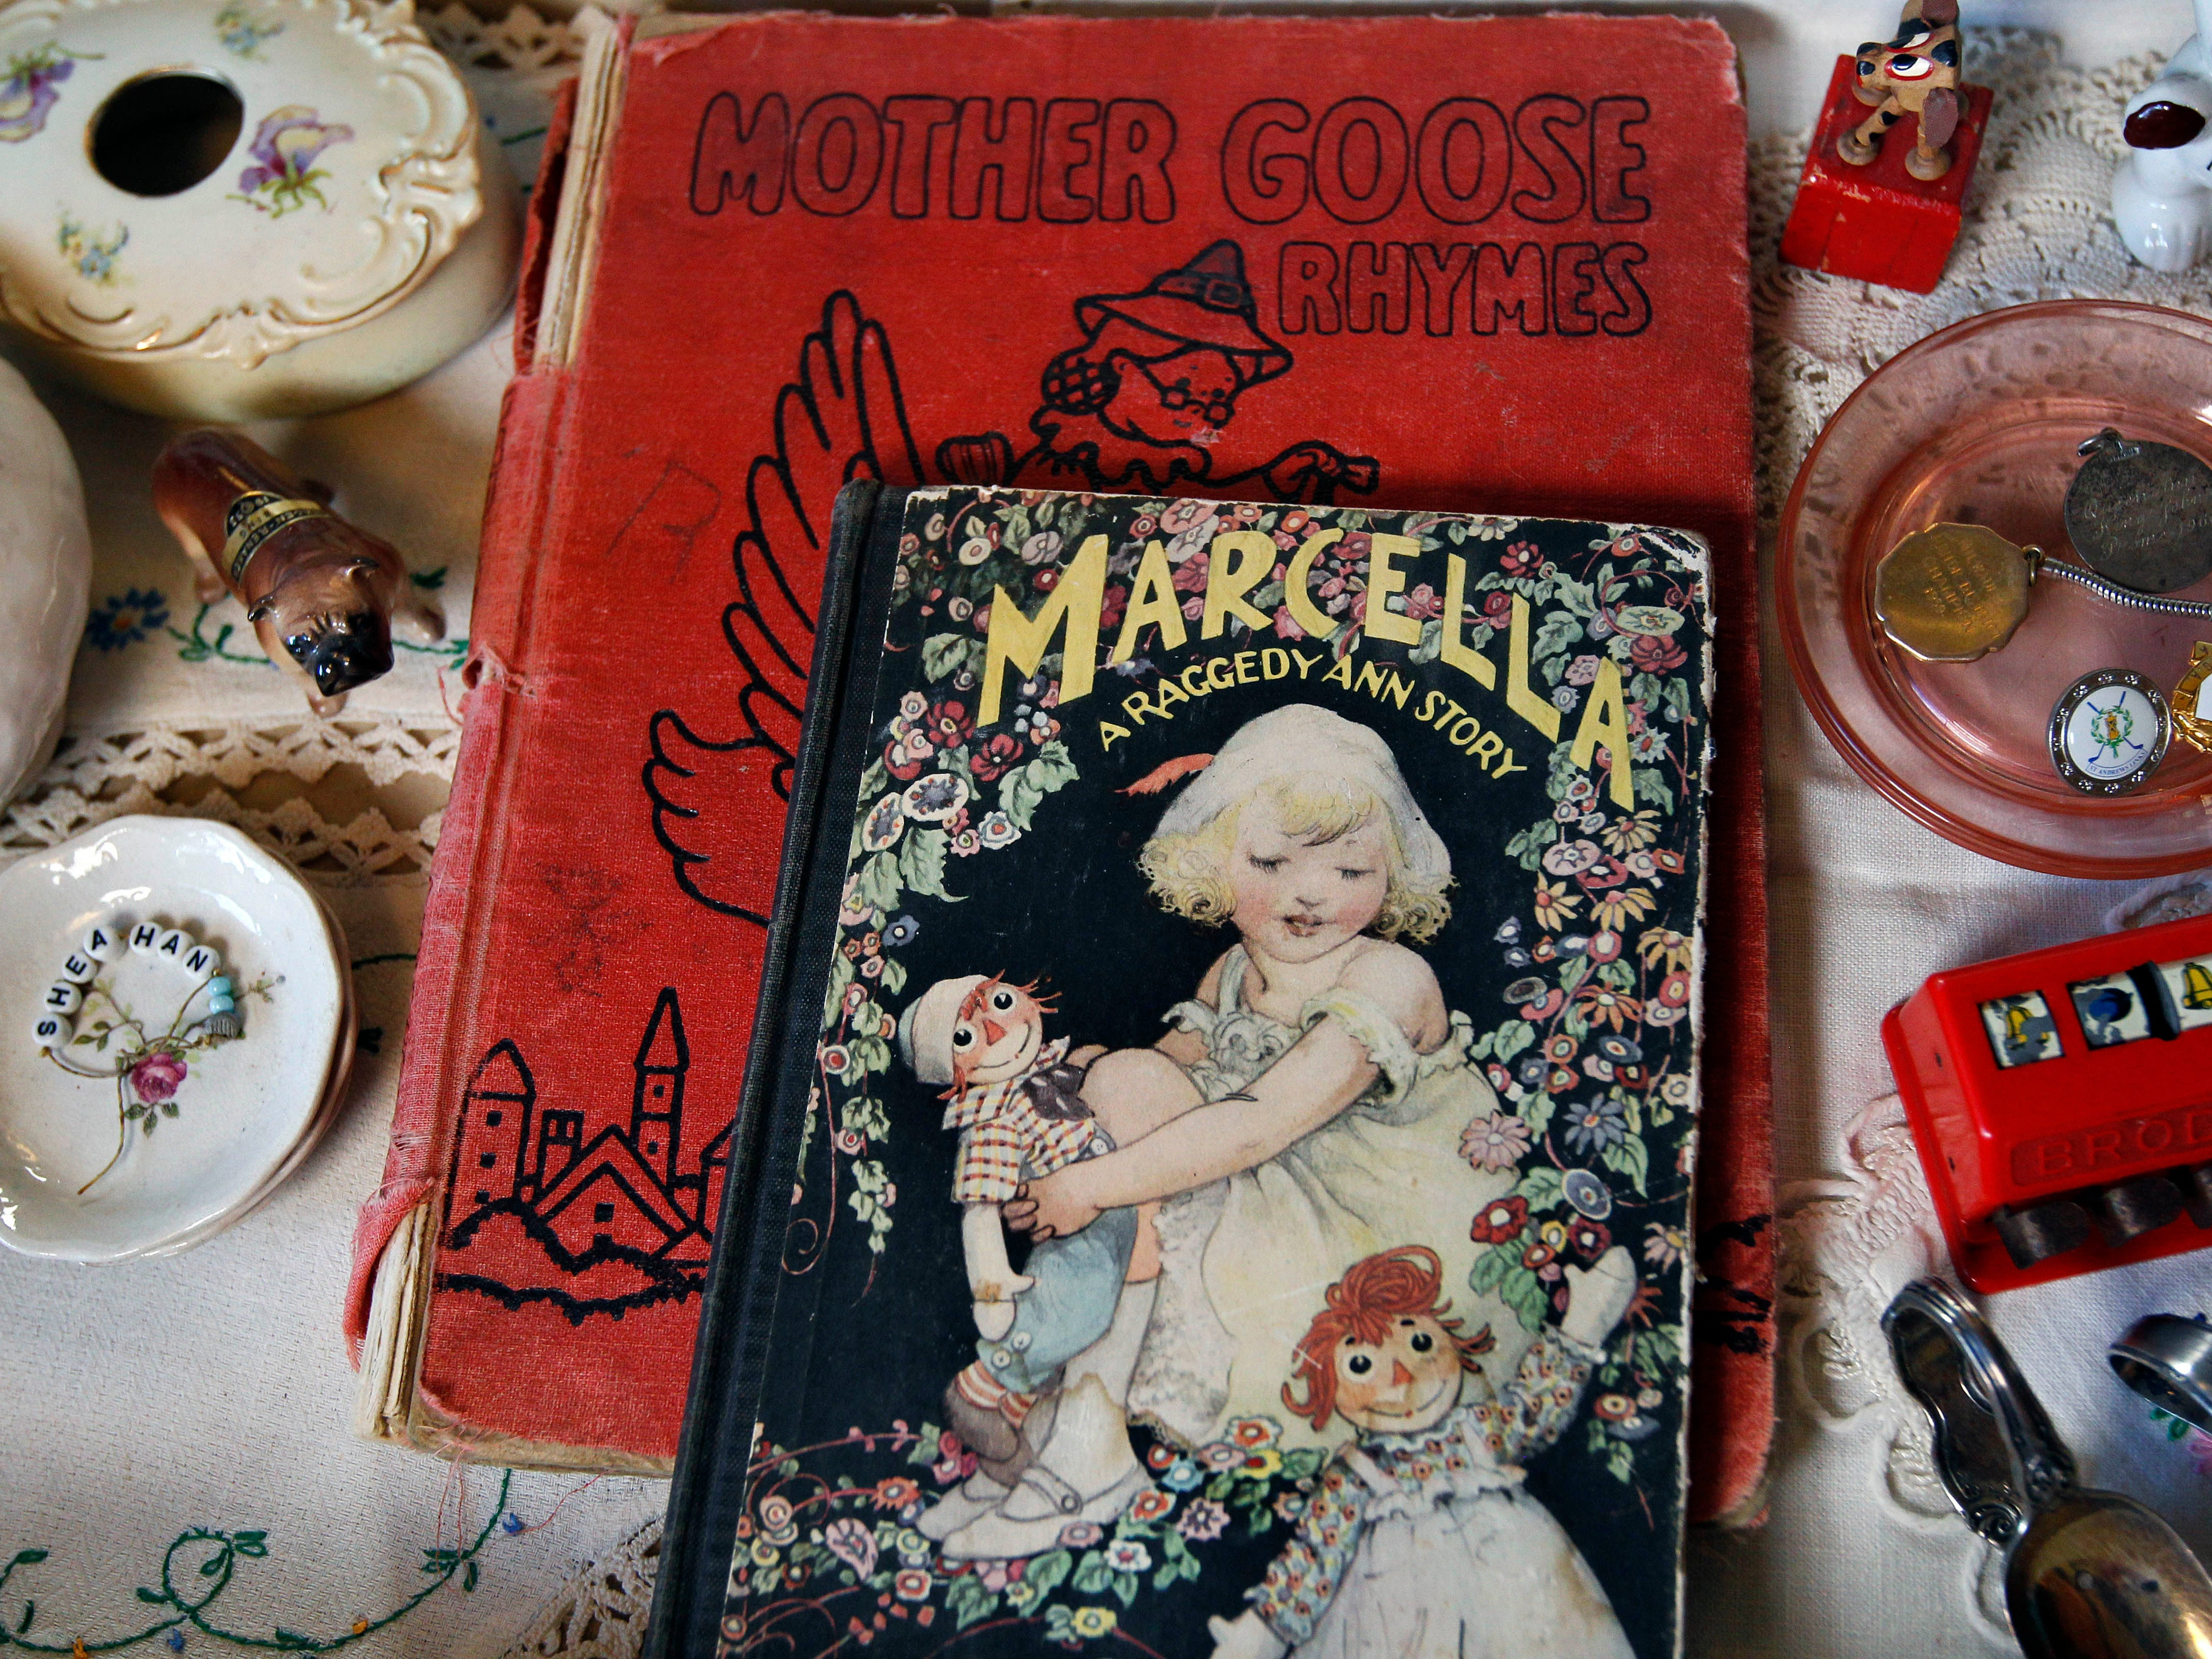 The homeowner's collection of family pieces includes these children's books and toys.